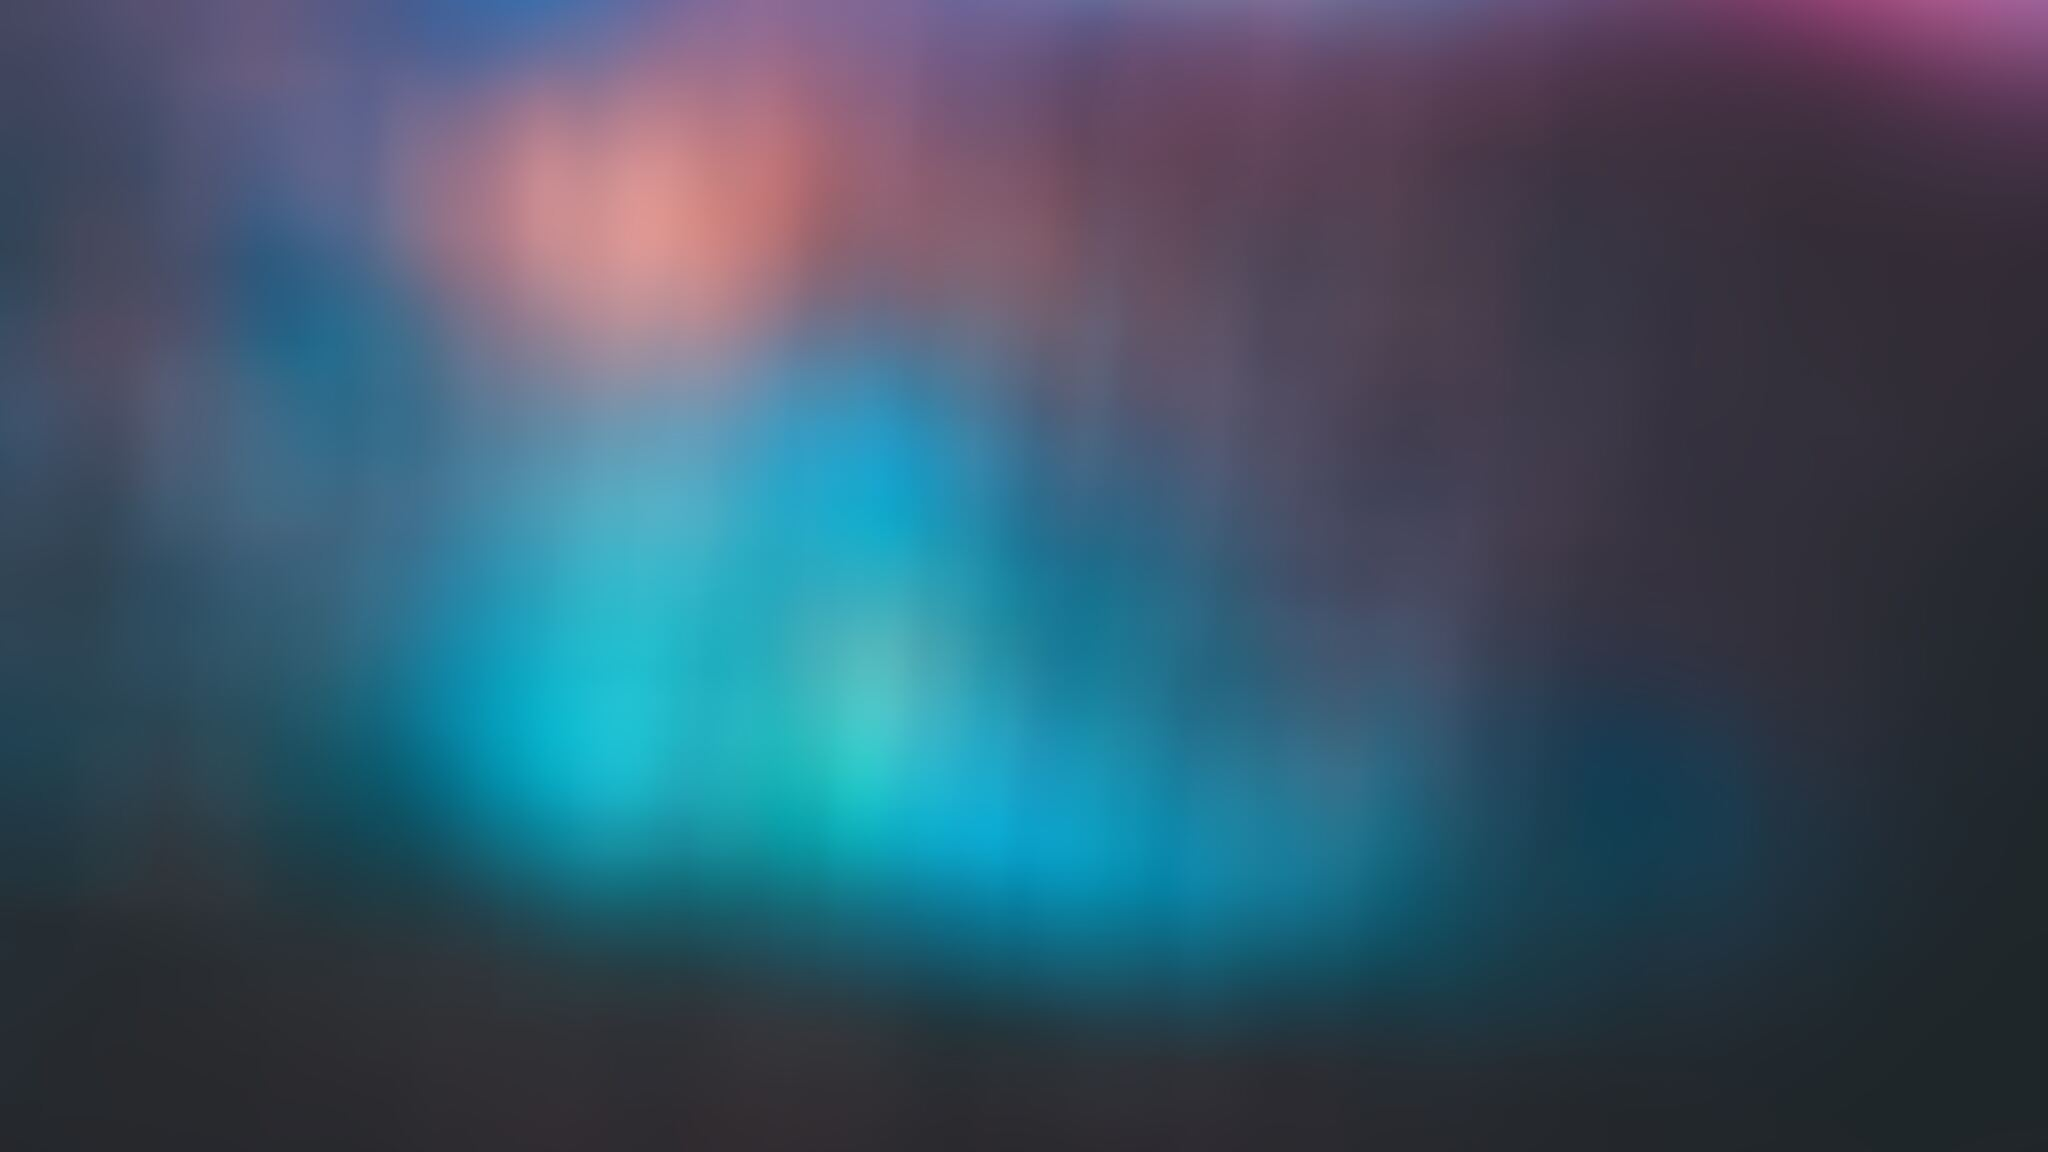 blur blue gradient cool background spjpg